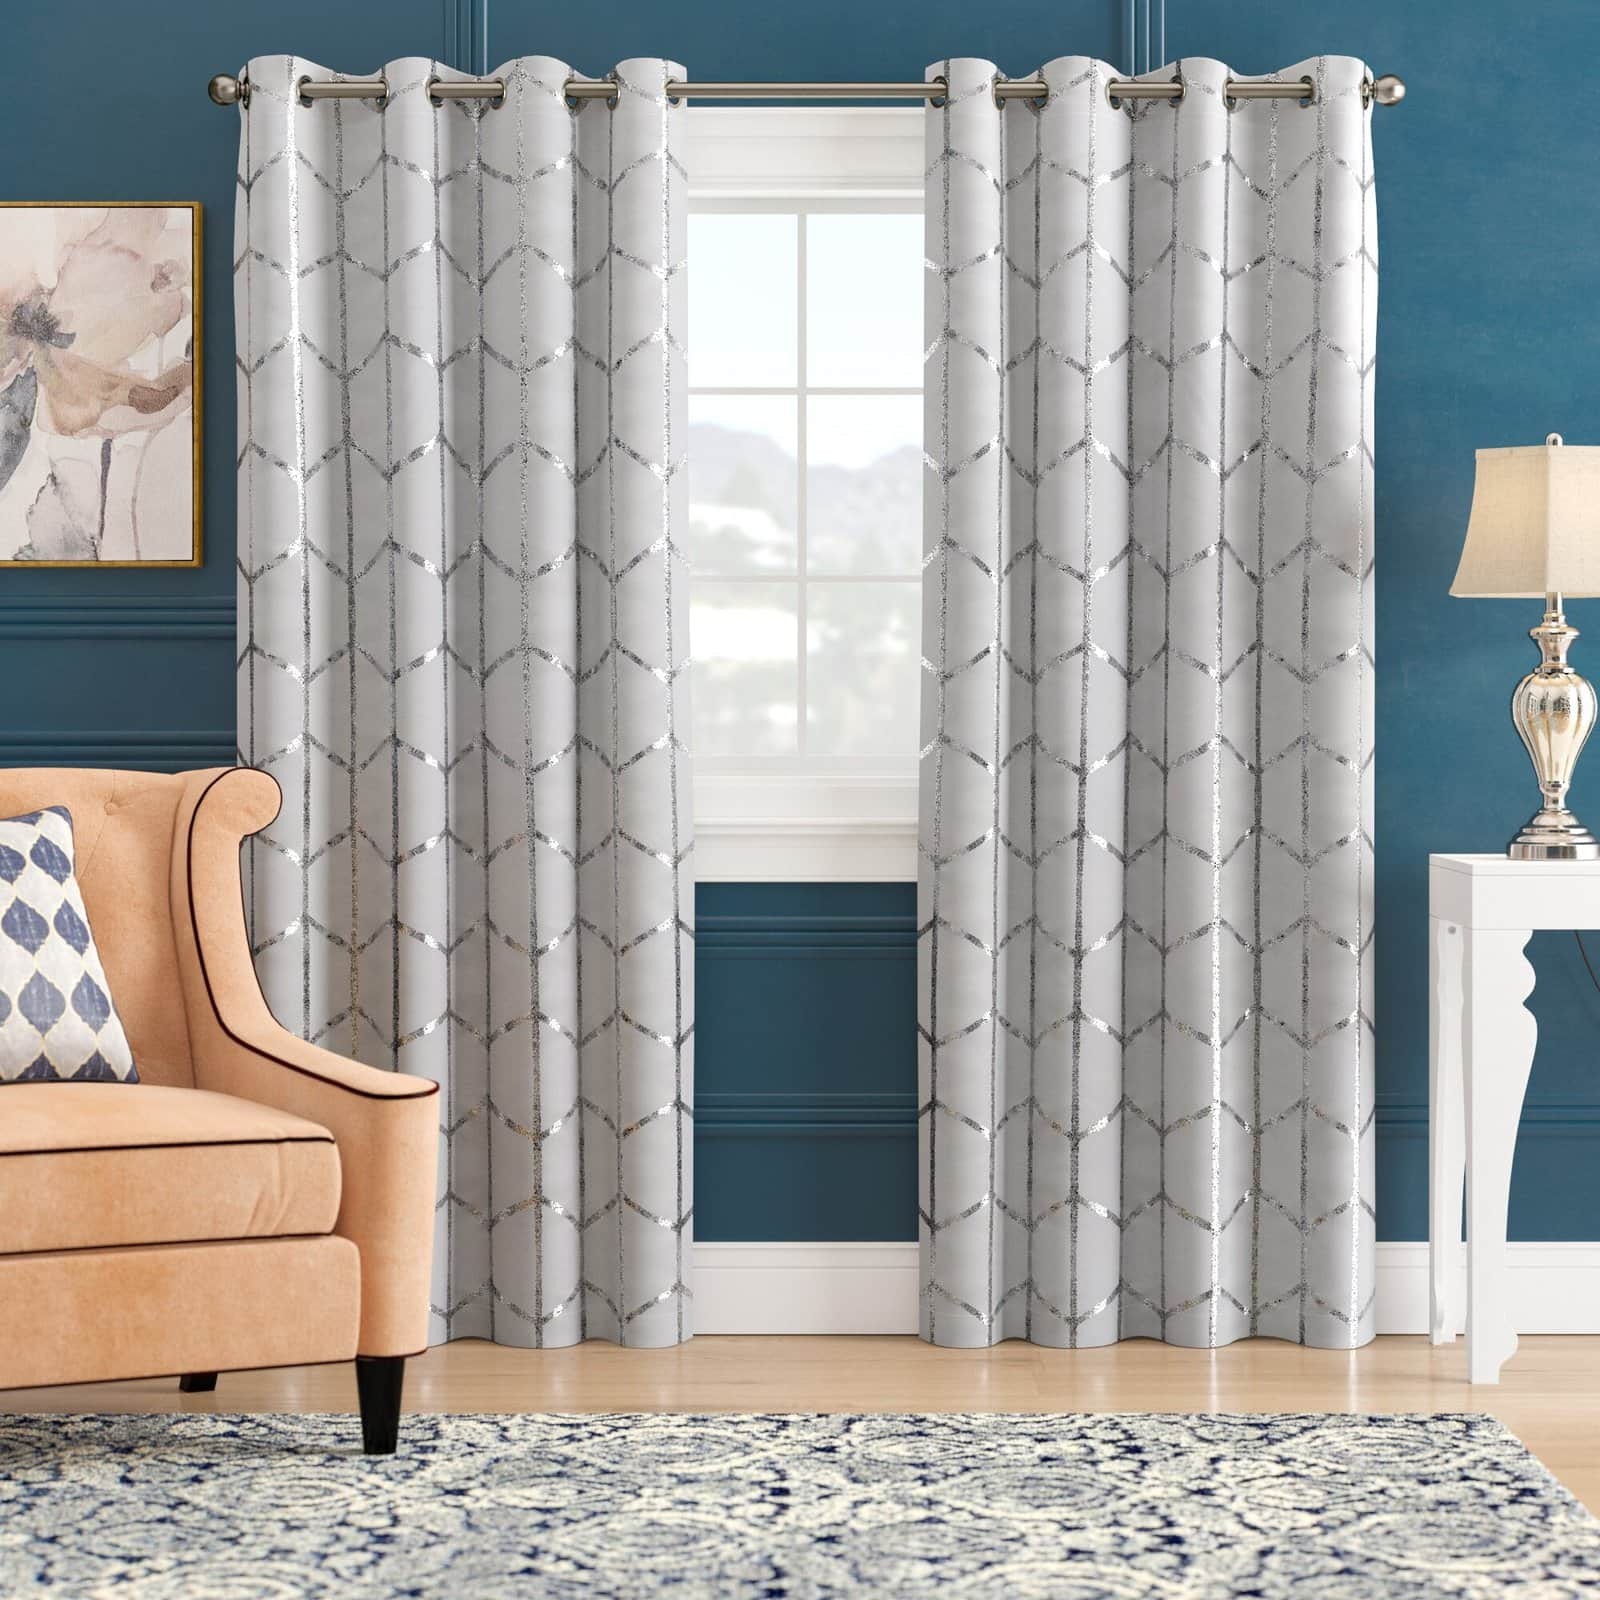 What Color Curtain Goes With Blue Walls? - 16 Ideas